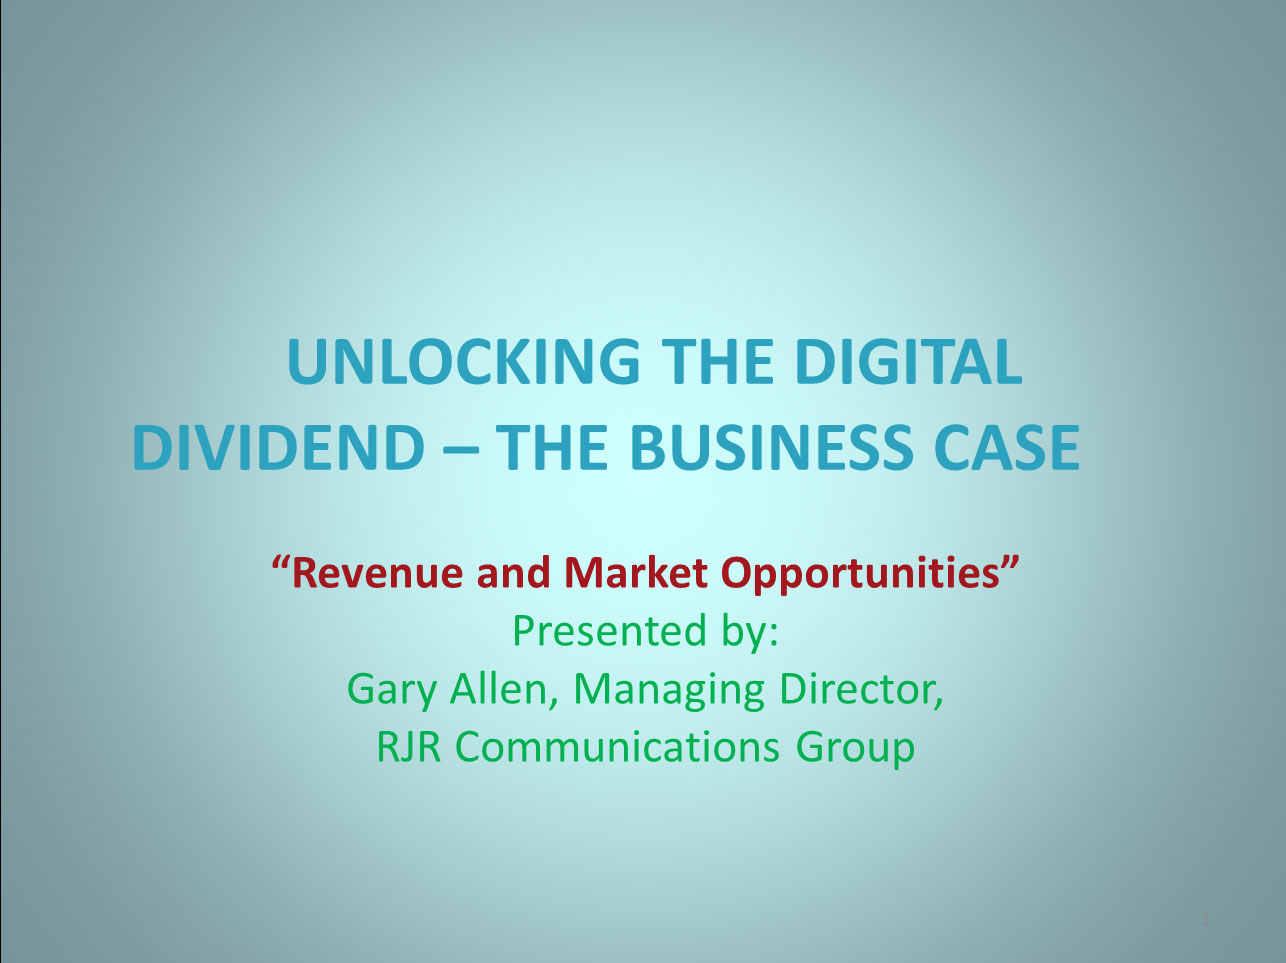 UNLOCKING THE DIGITAL DIVIDEND THE BUSINESS CASE Revenue and Market Opportunities by Gary Allen